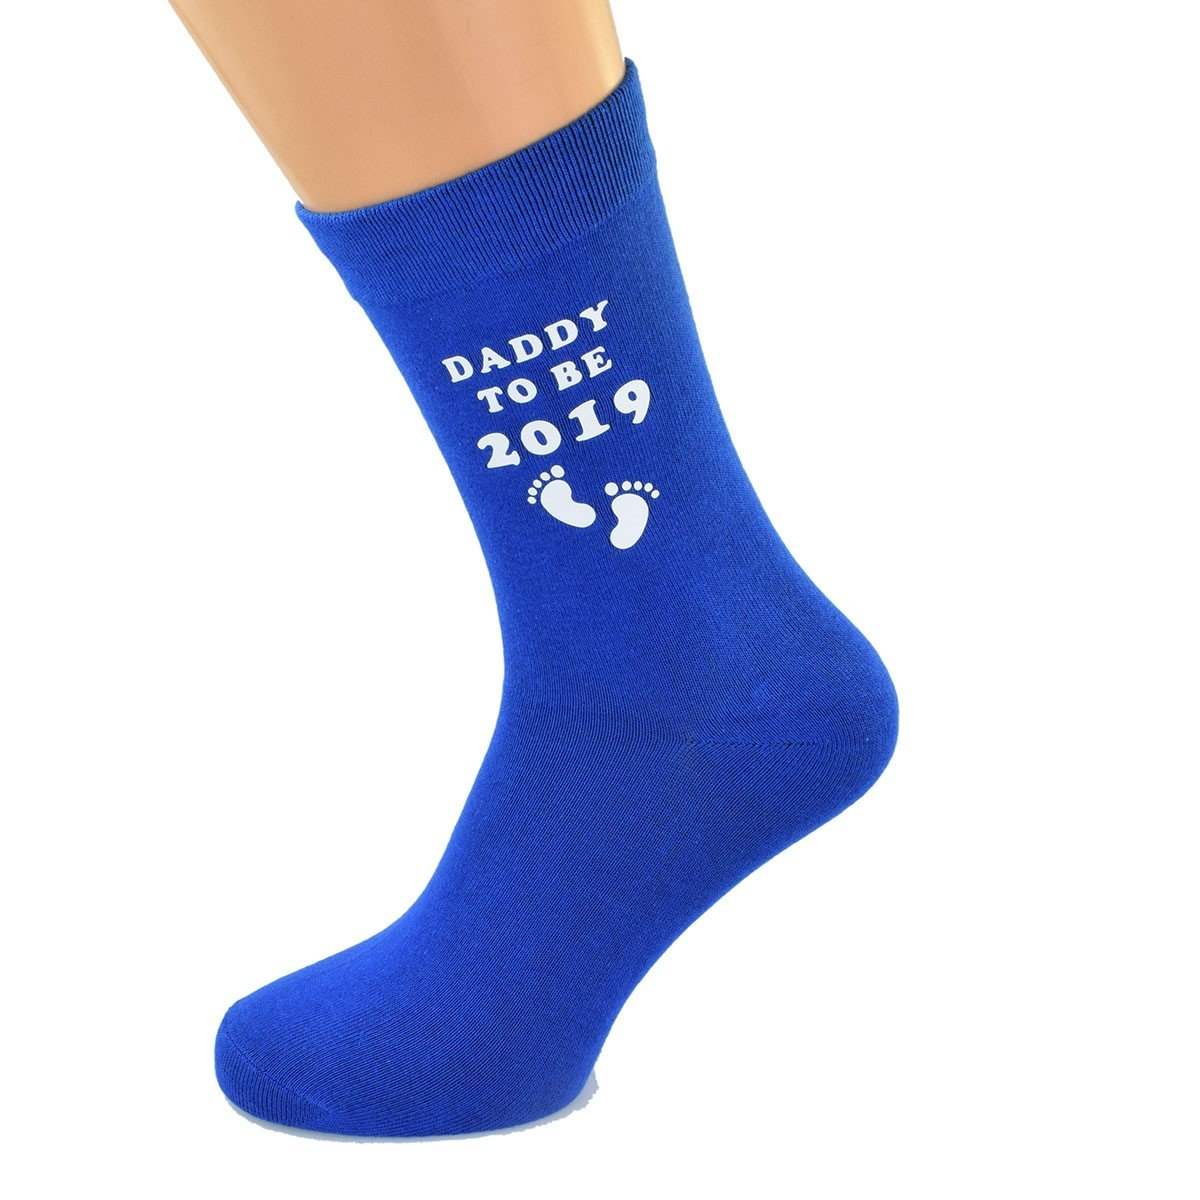 Daddy to Be 2019 and Foot print Design Printed on BLUE Mens Socks Great for New Baby Present for Dad MC Gifts DADDY TO BE 2019 BLUE